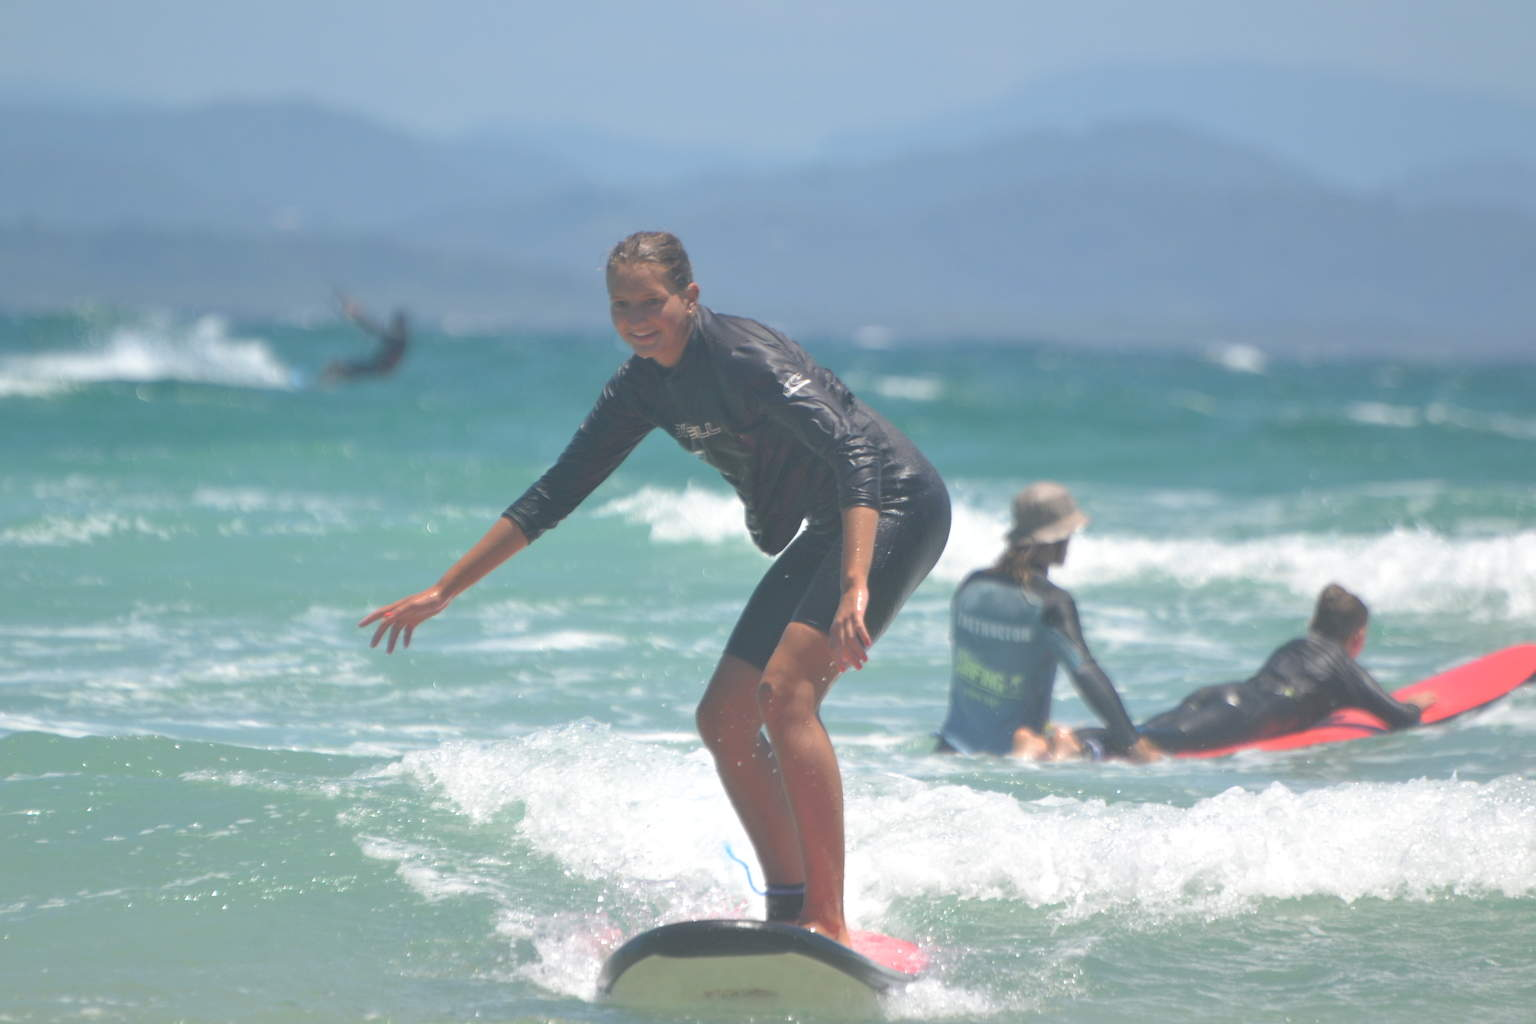 Another one of the surfers in my class. In the background you can see another surfer receiving instruction.